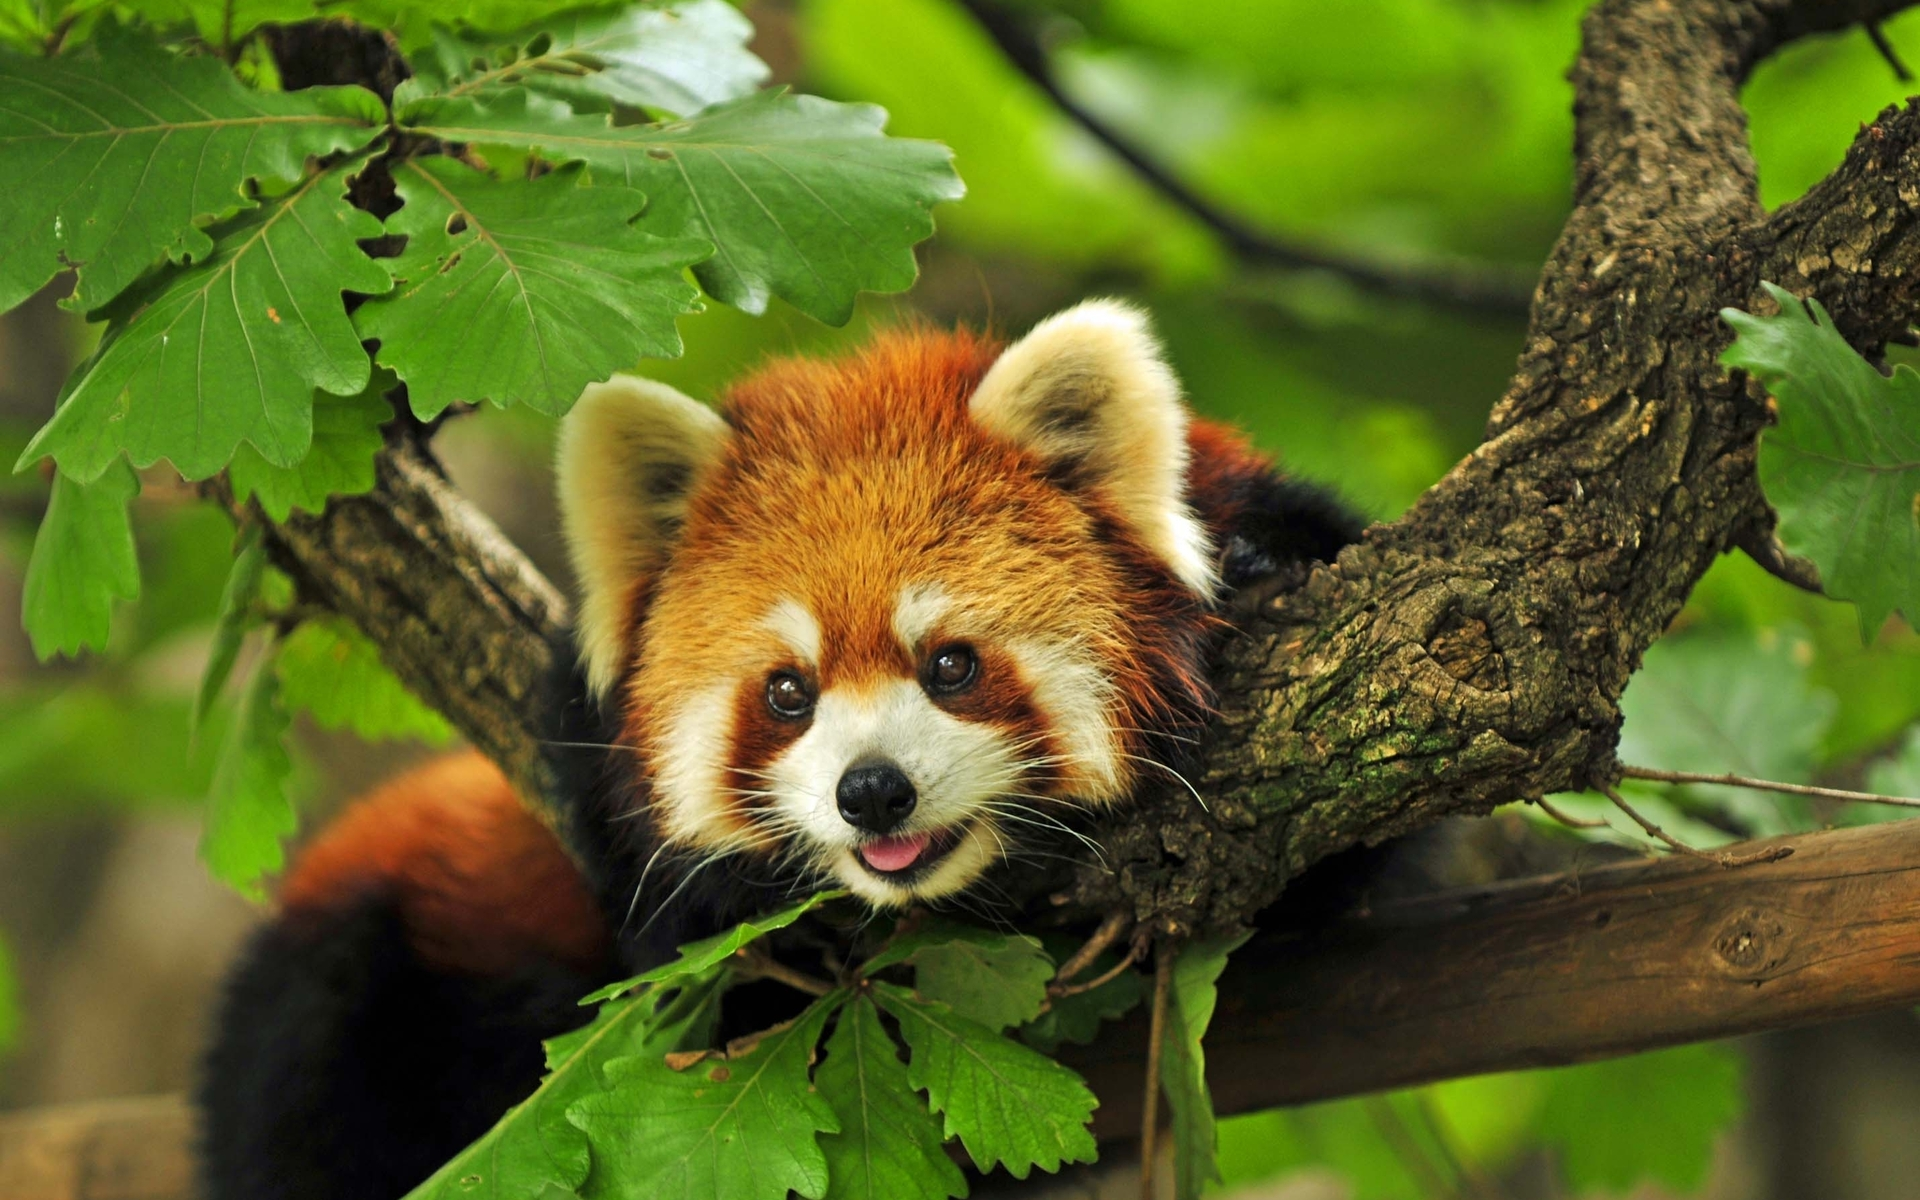 Cute Red Panda Wallpaper 300x187 For Desktop 1920x1200